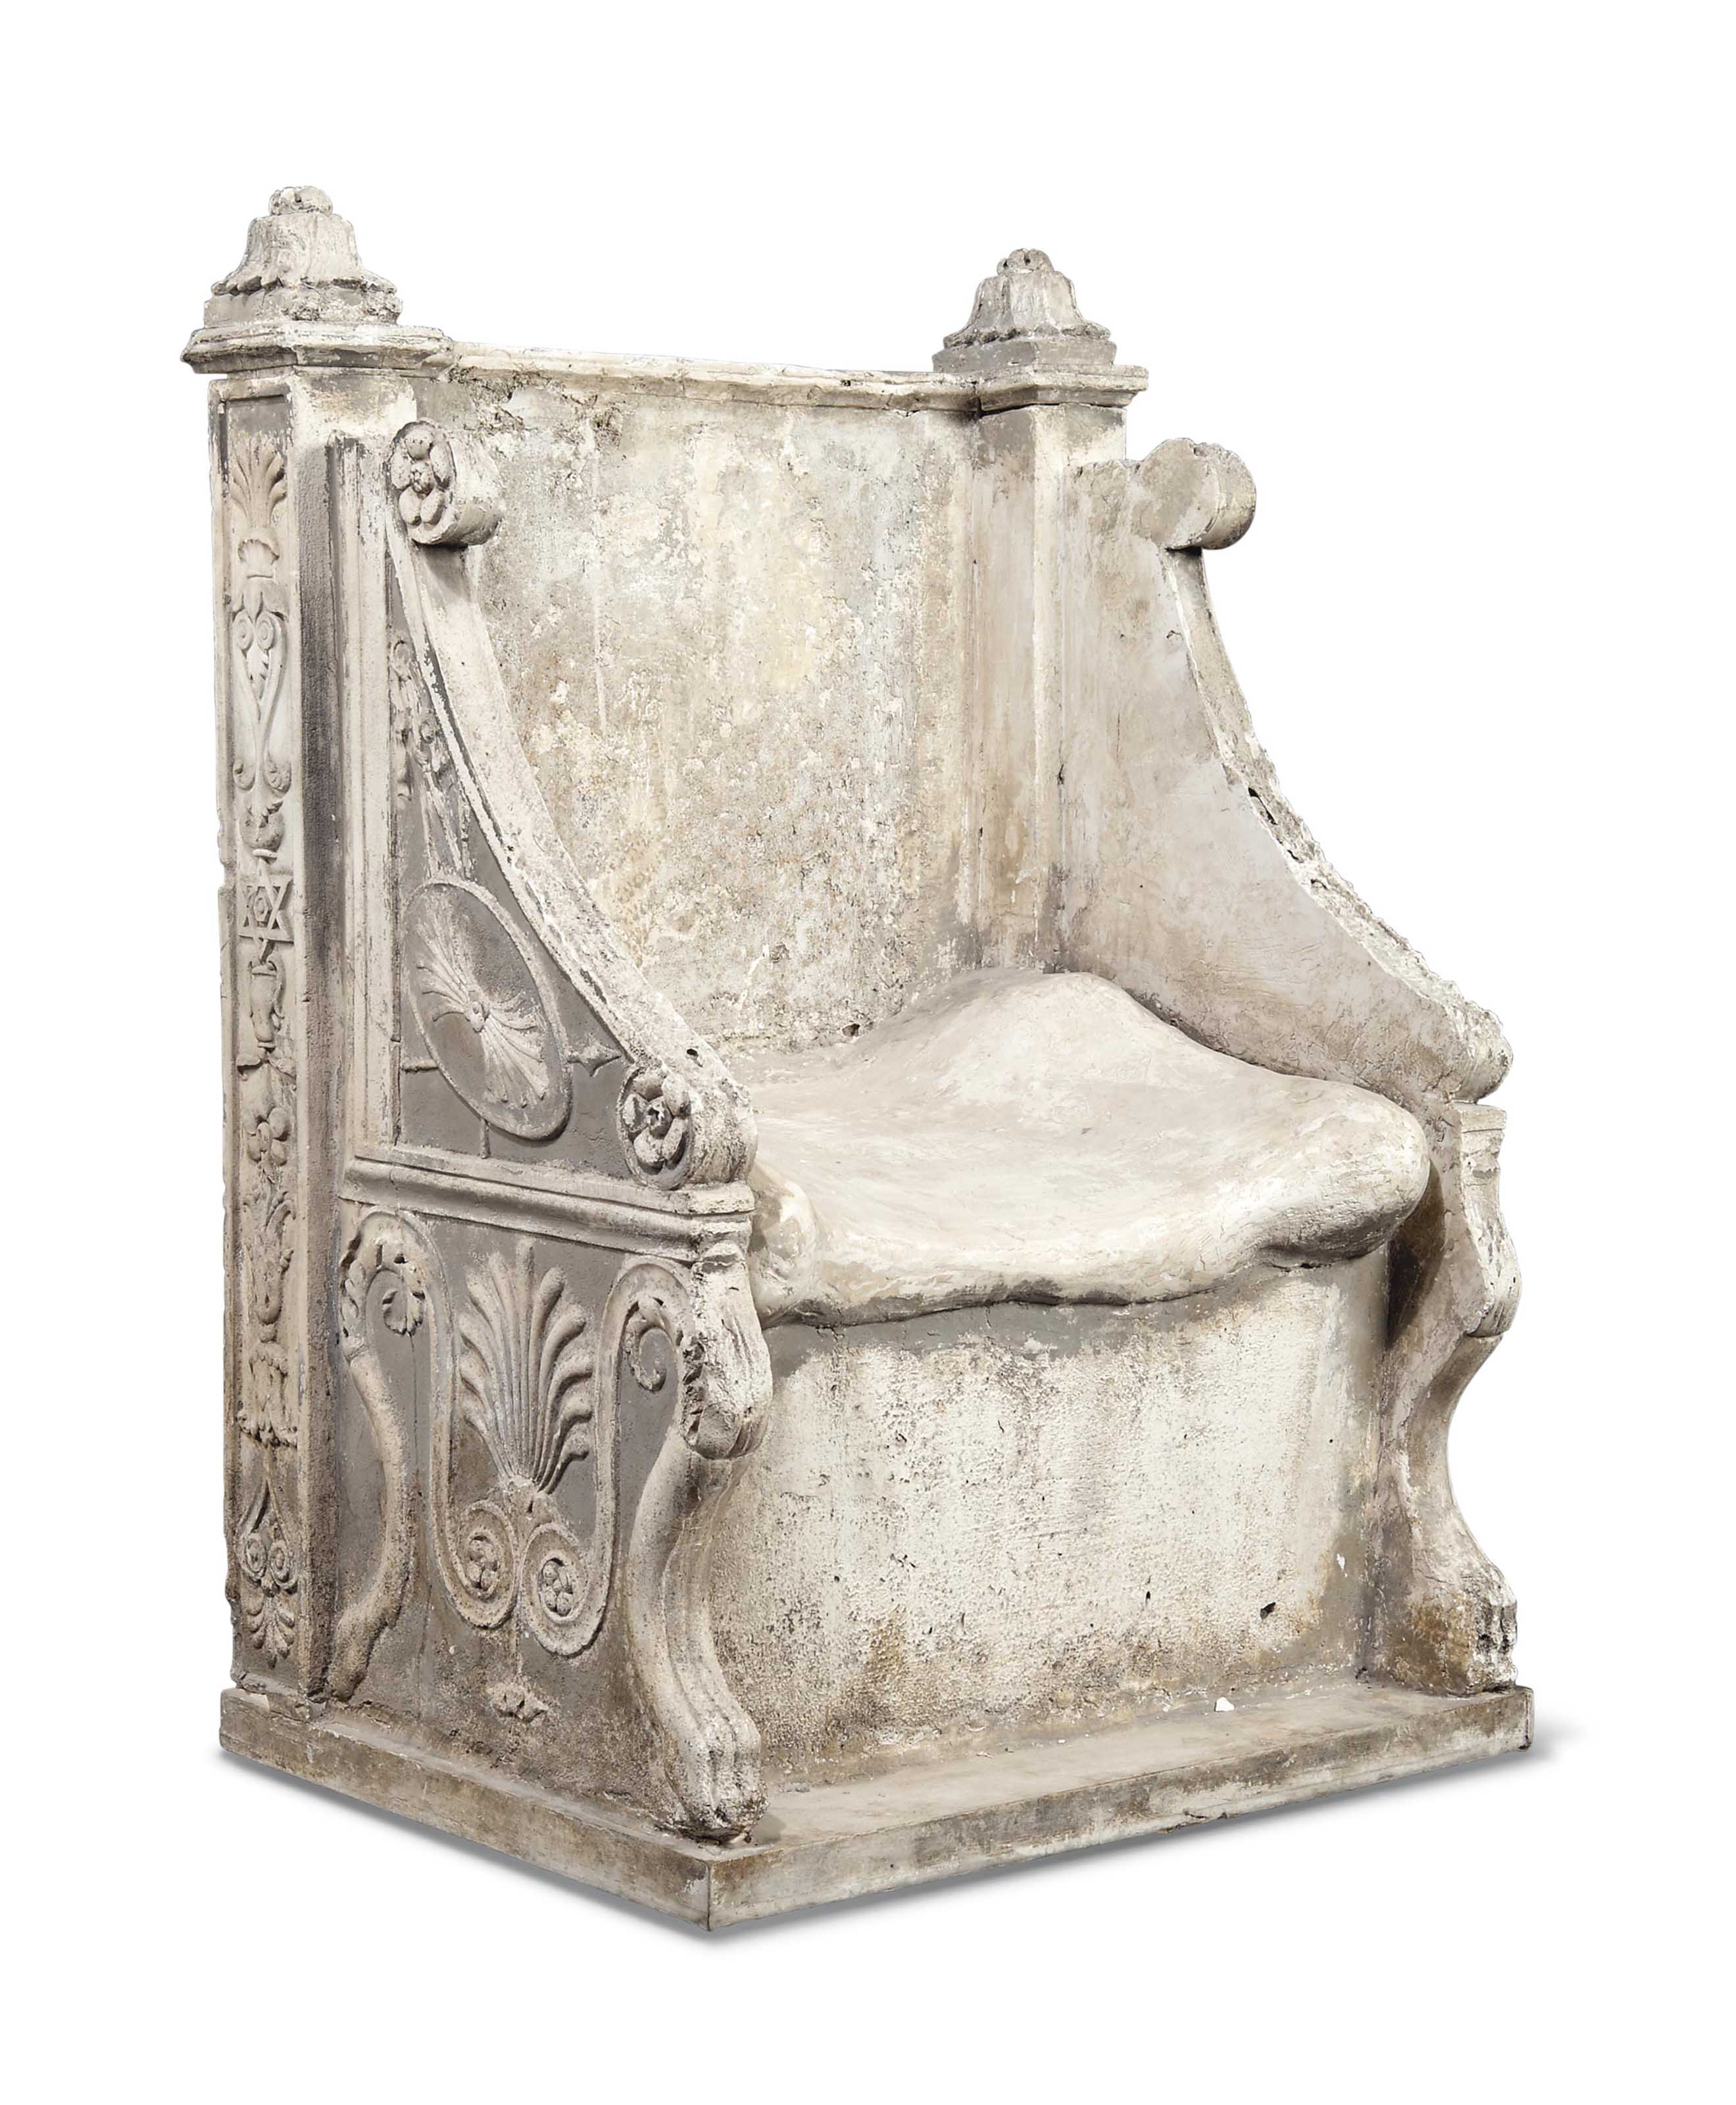 A PLASTER MODEL OF THE THRONE